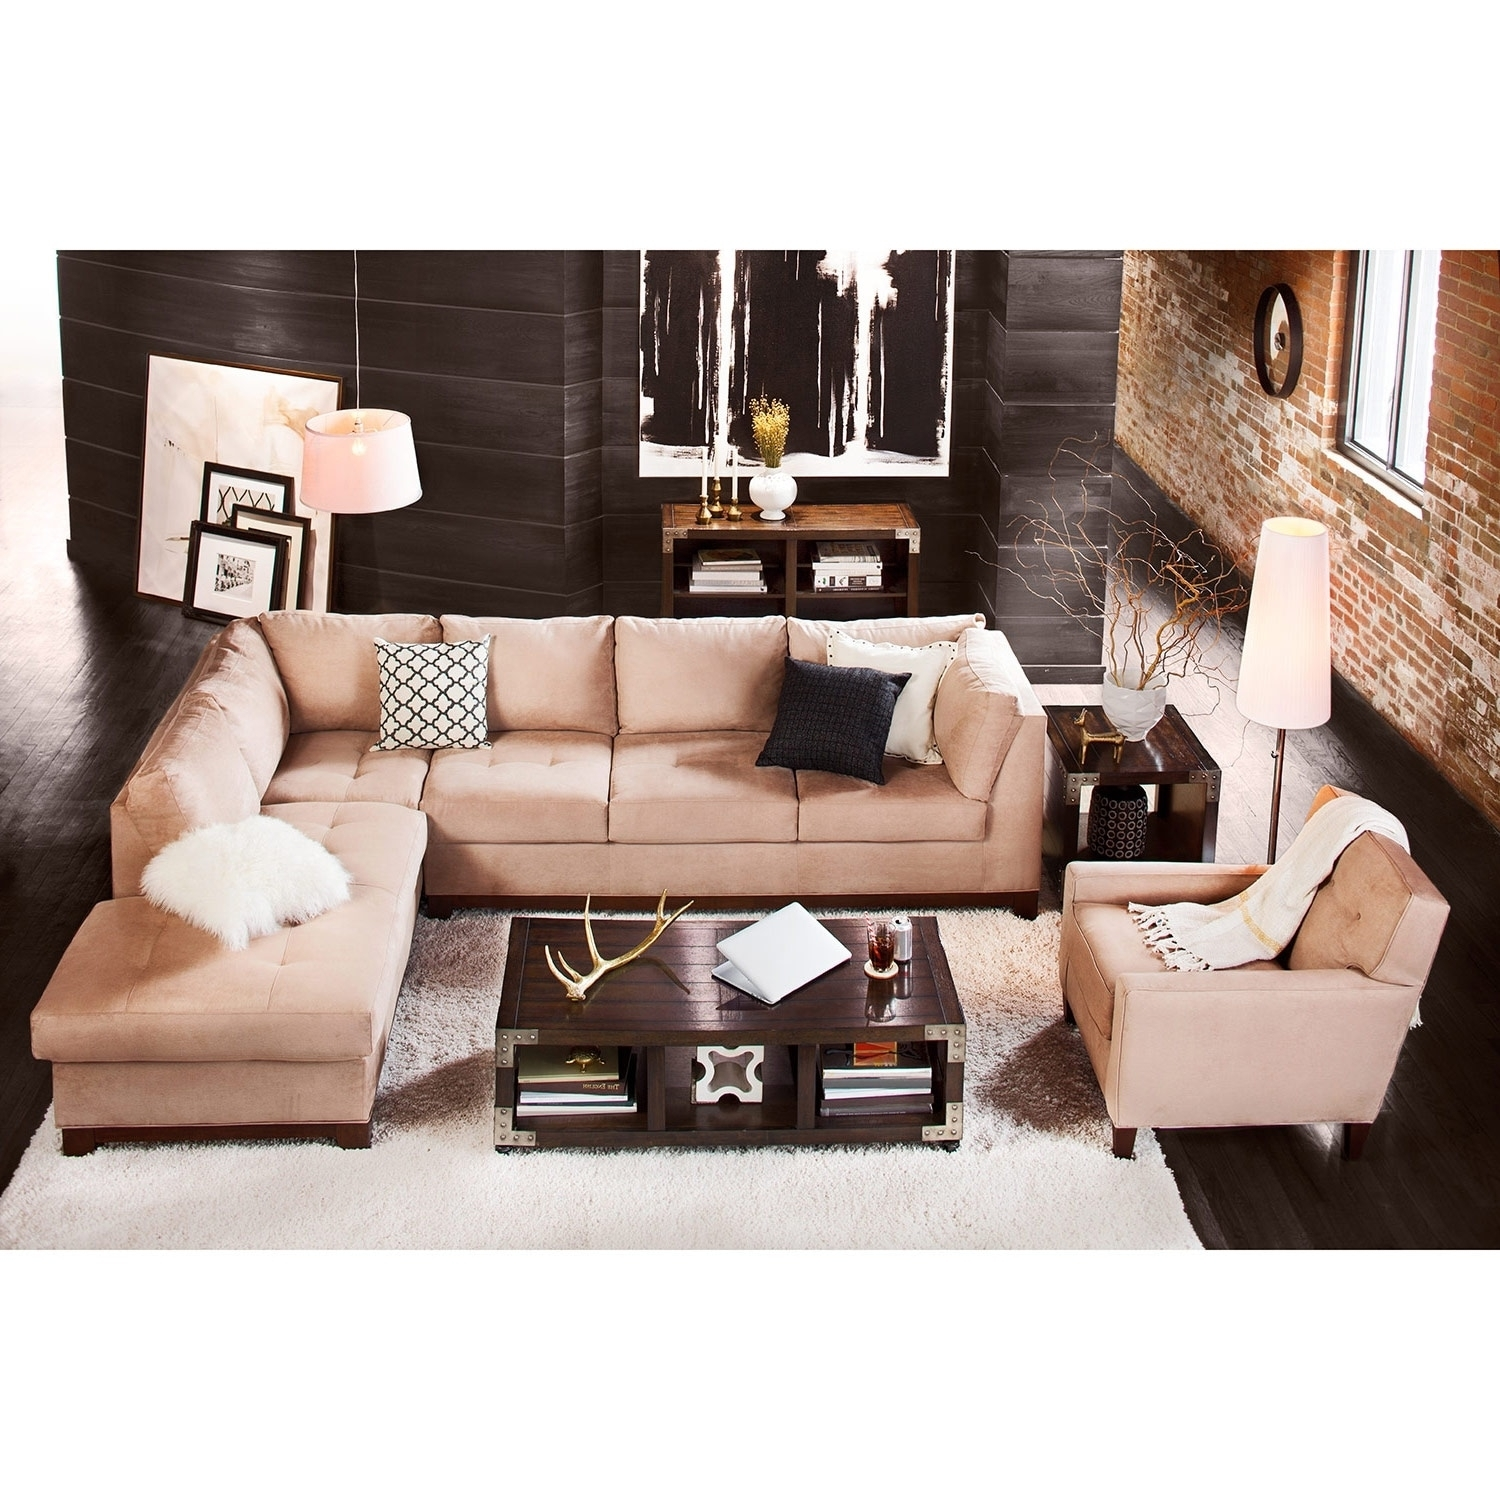 Soho 2 Piece Sectional With Left Facing Chaise – Cobblestone | Value Regarding Arrowmask 2 Piece Sectionals With Sleeper & Left Facing Chaise (View 24 of 25)